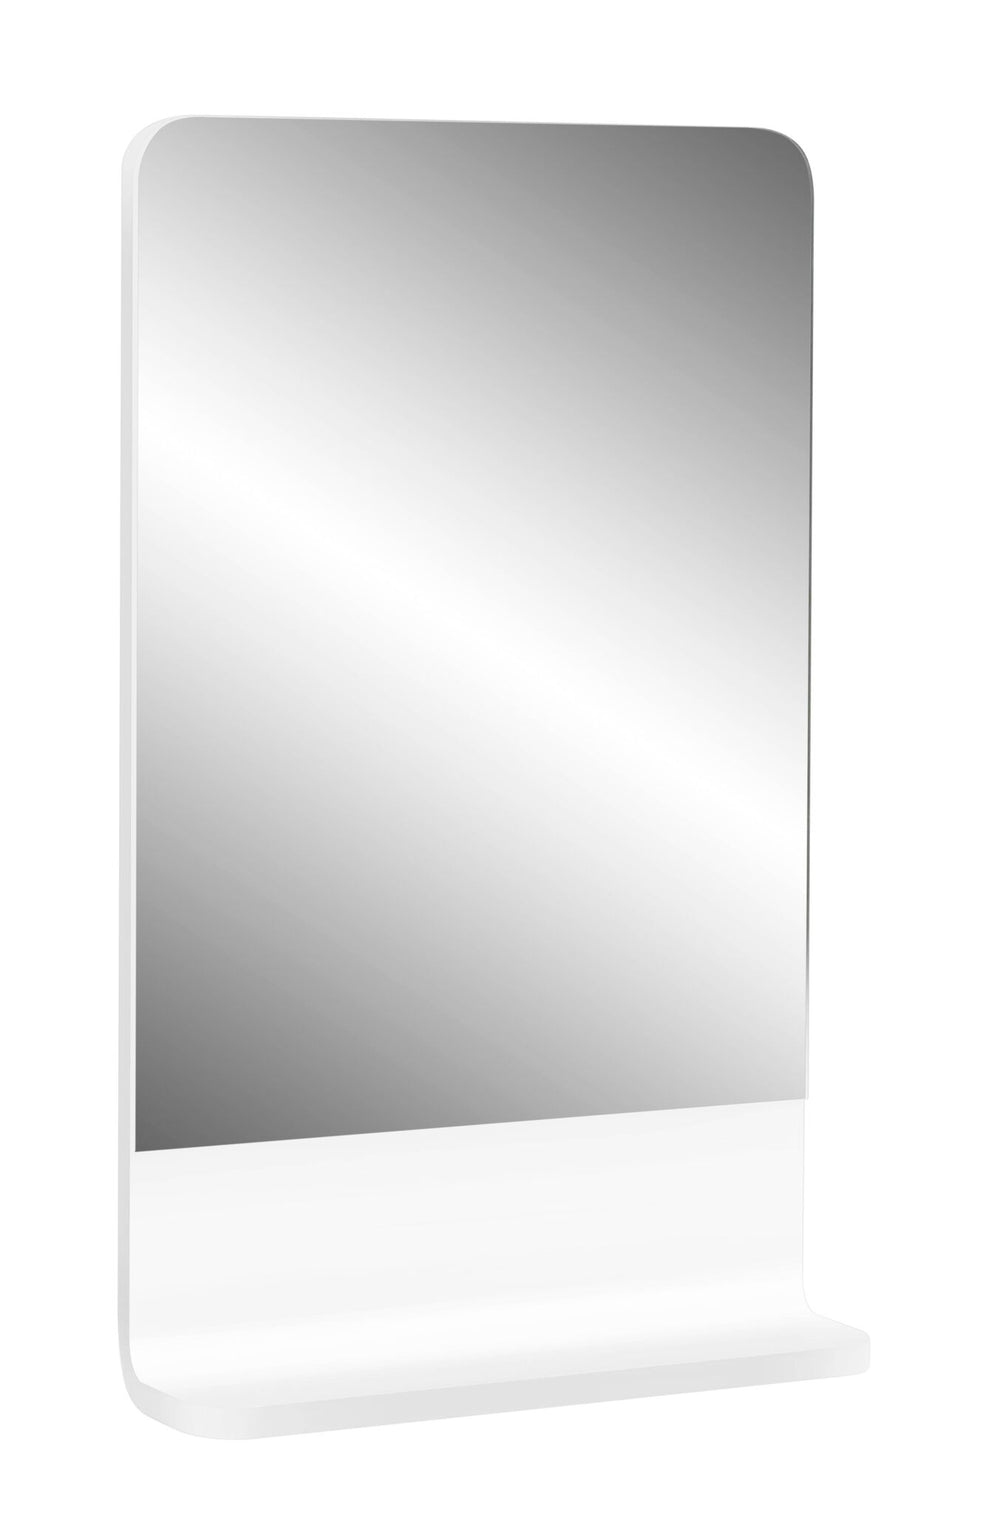 Cara 450 Mirror Shelf WHITE